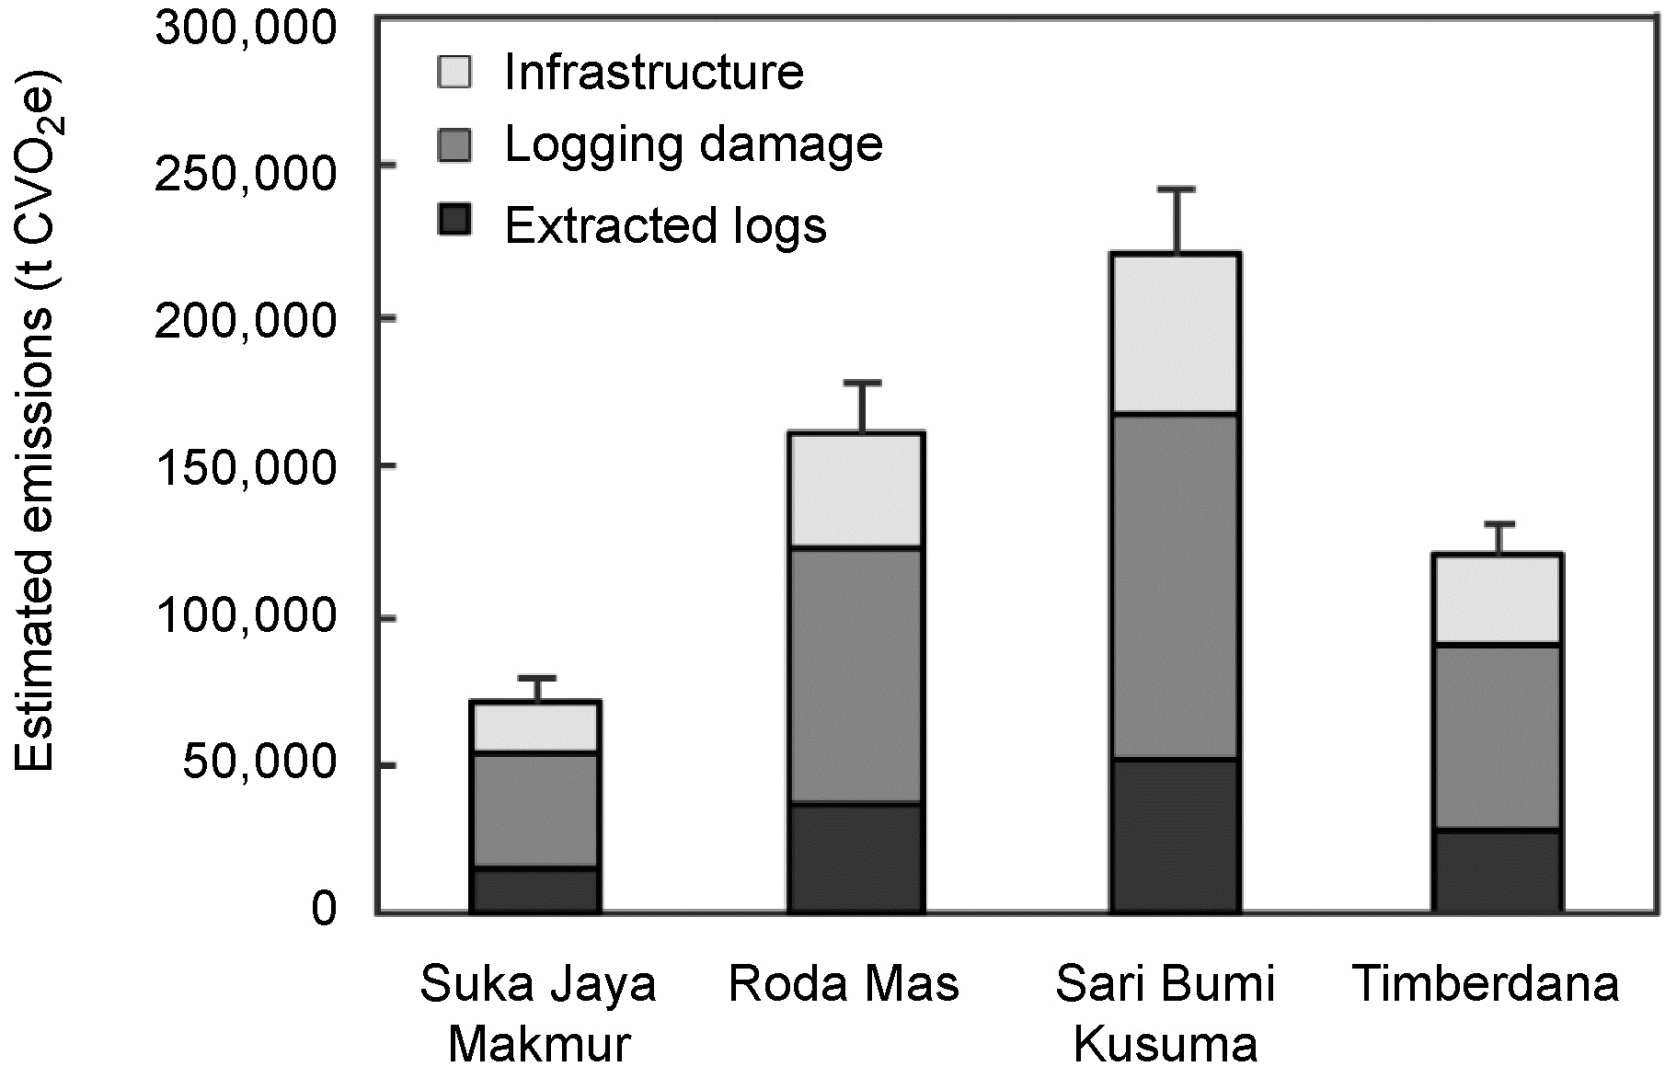 Estimated greenhouse gas emissions, in tons of carbon dioxide equivalents (t CO2e), associated with timber extraction in the four concessions due to logging infrastructure, incidental damage, and extraction. The error bars represent the 95% confidence interval of the total emissions of the concession.